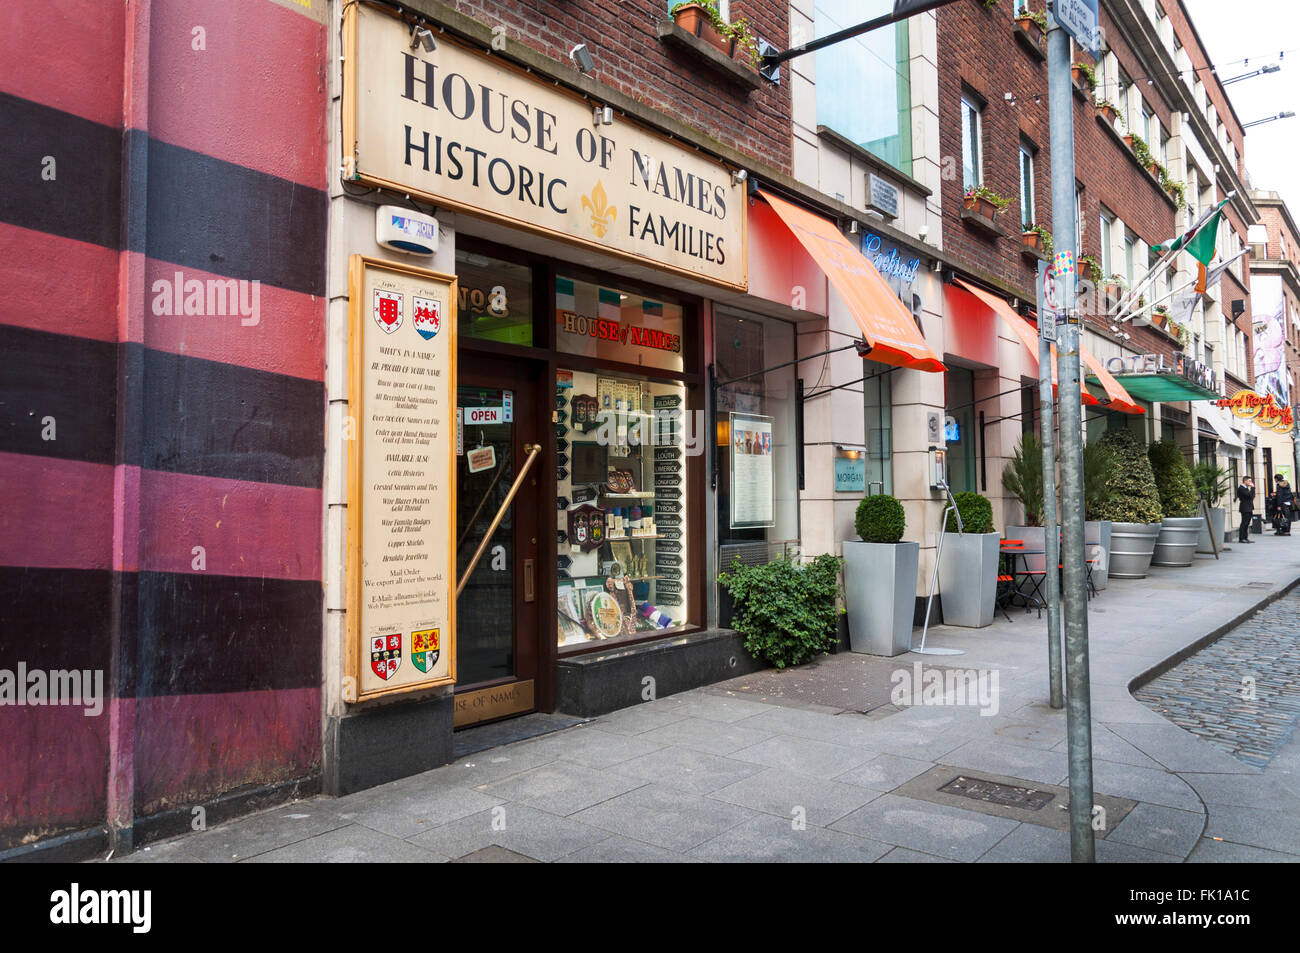 House Of Names, Fleet Street, Dublin, Ireland   Stock Image